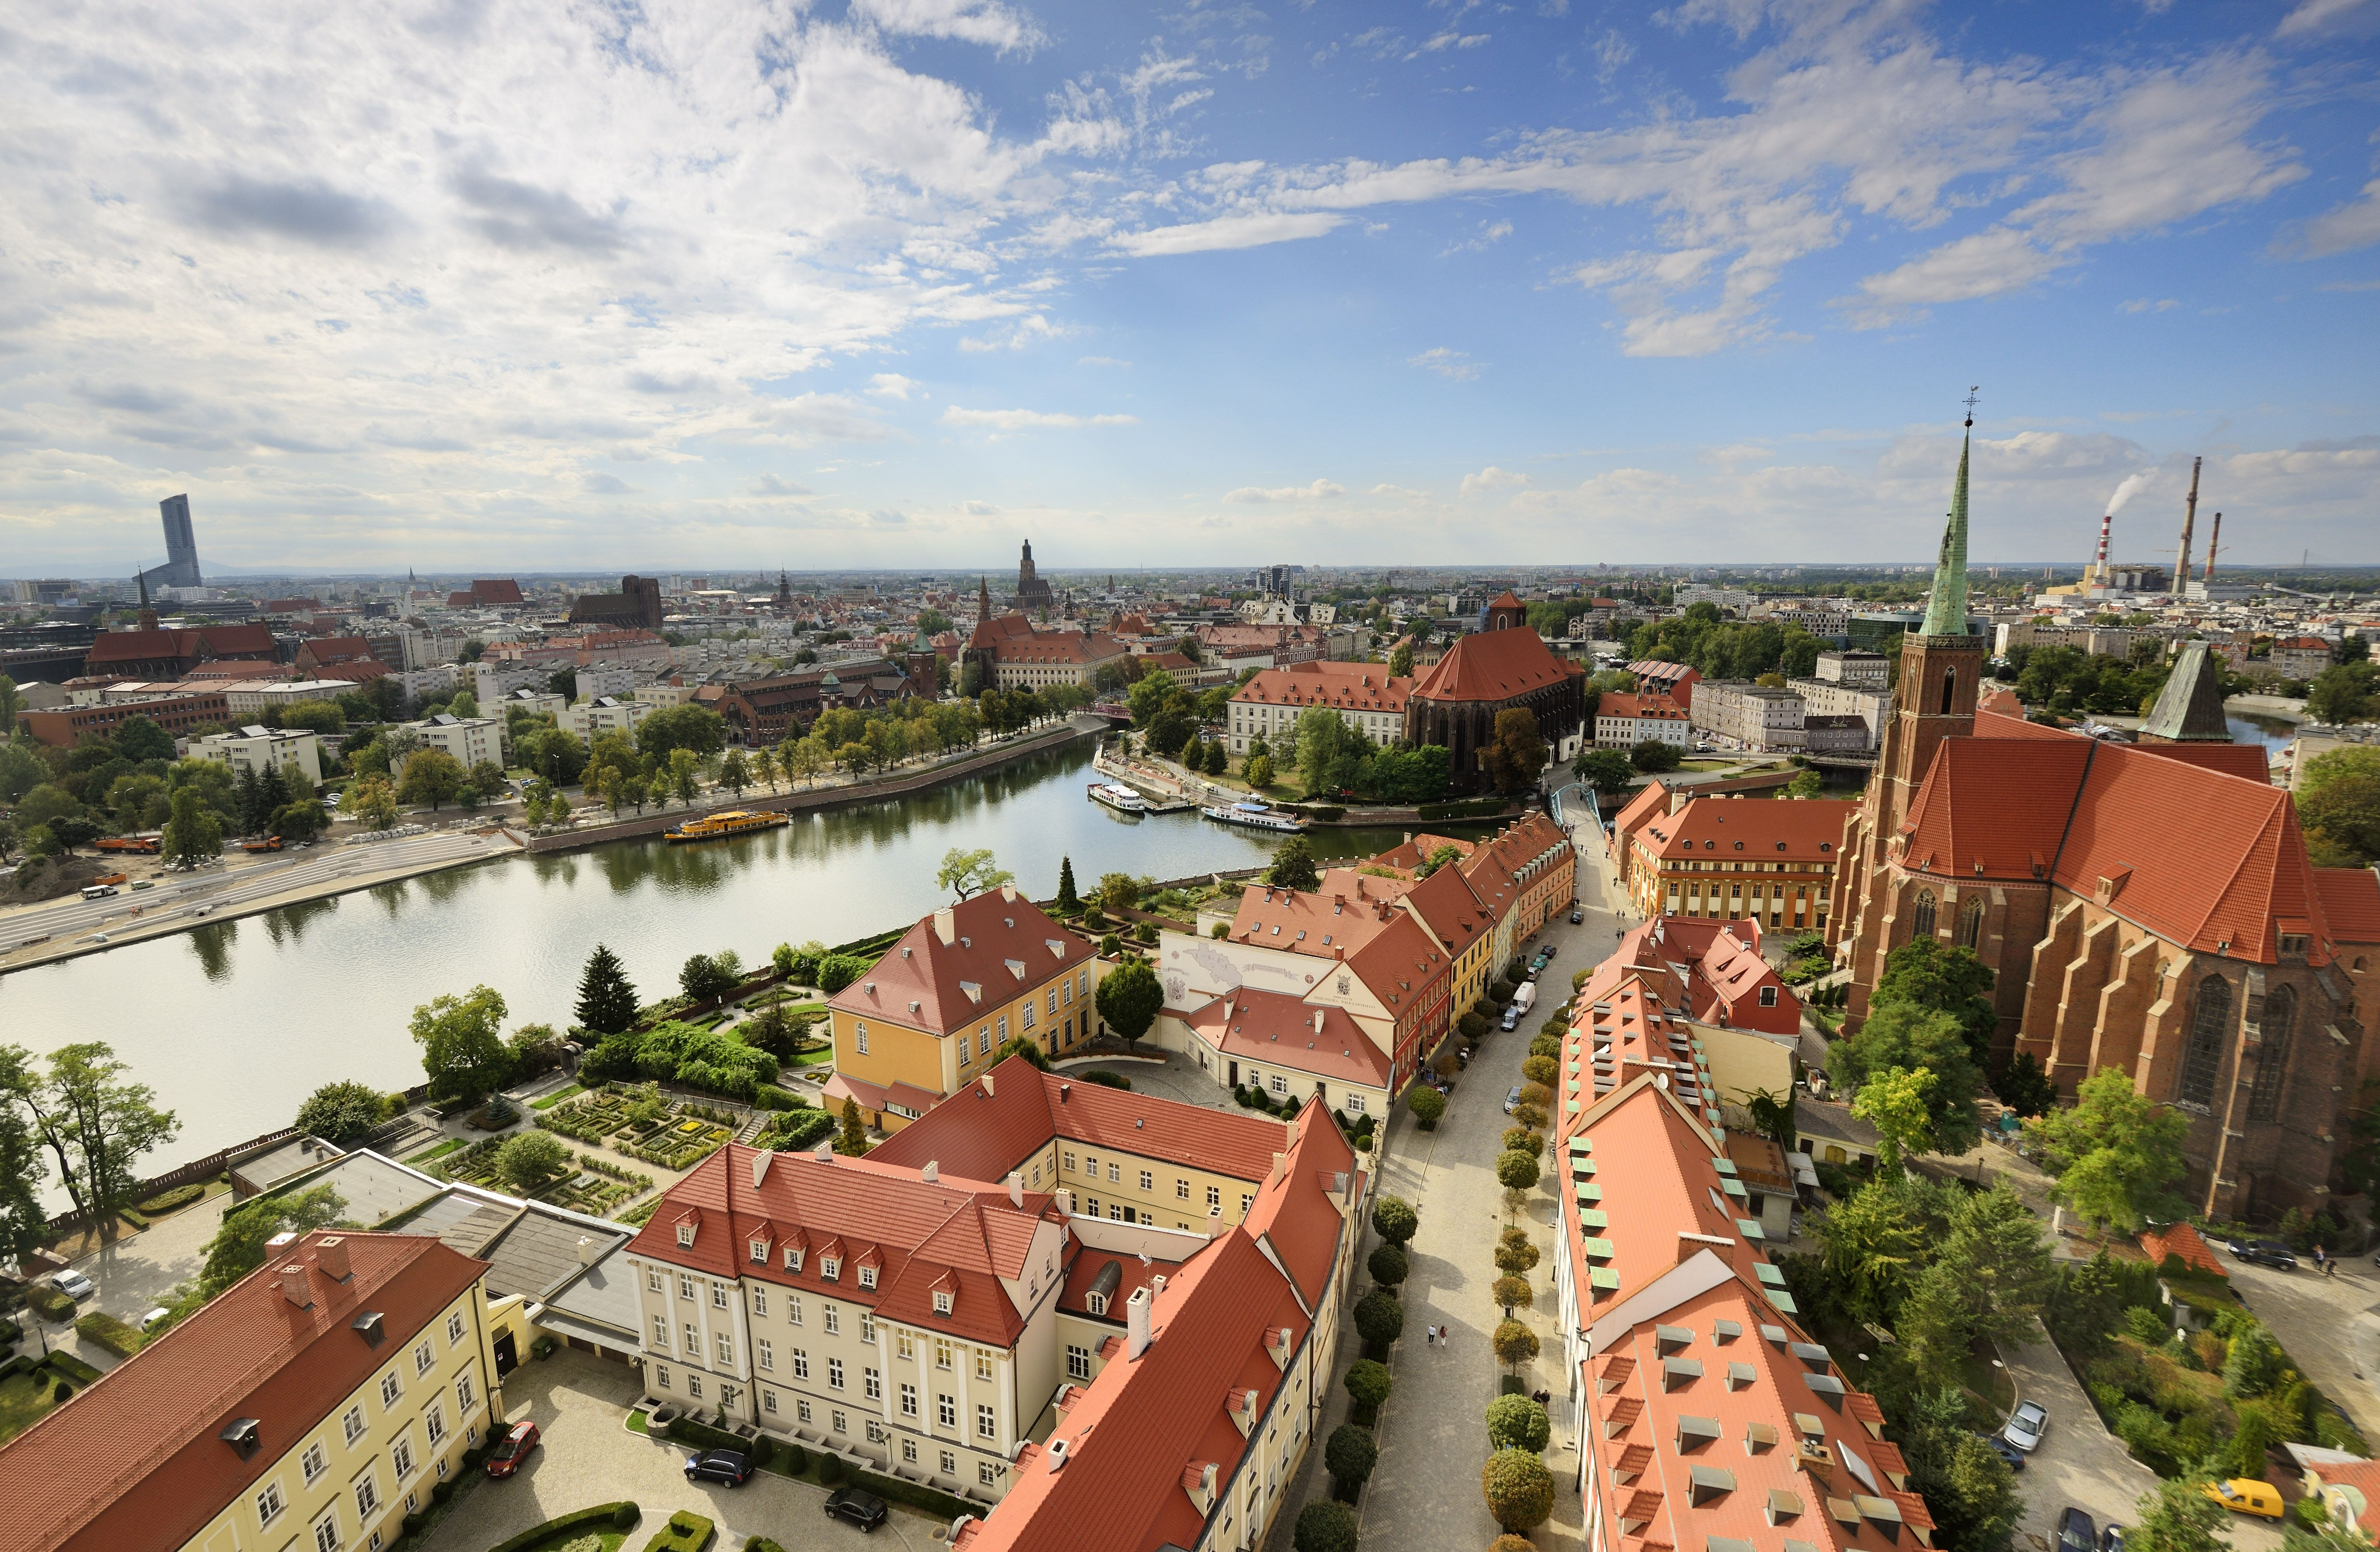 Poland, Lower Silesia, Wroclaw, Ostrow Tumski district (Cathedral island) and Oder river